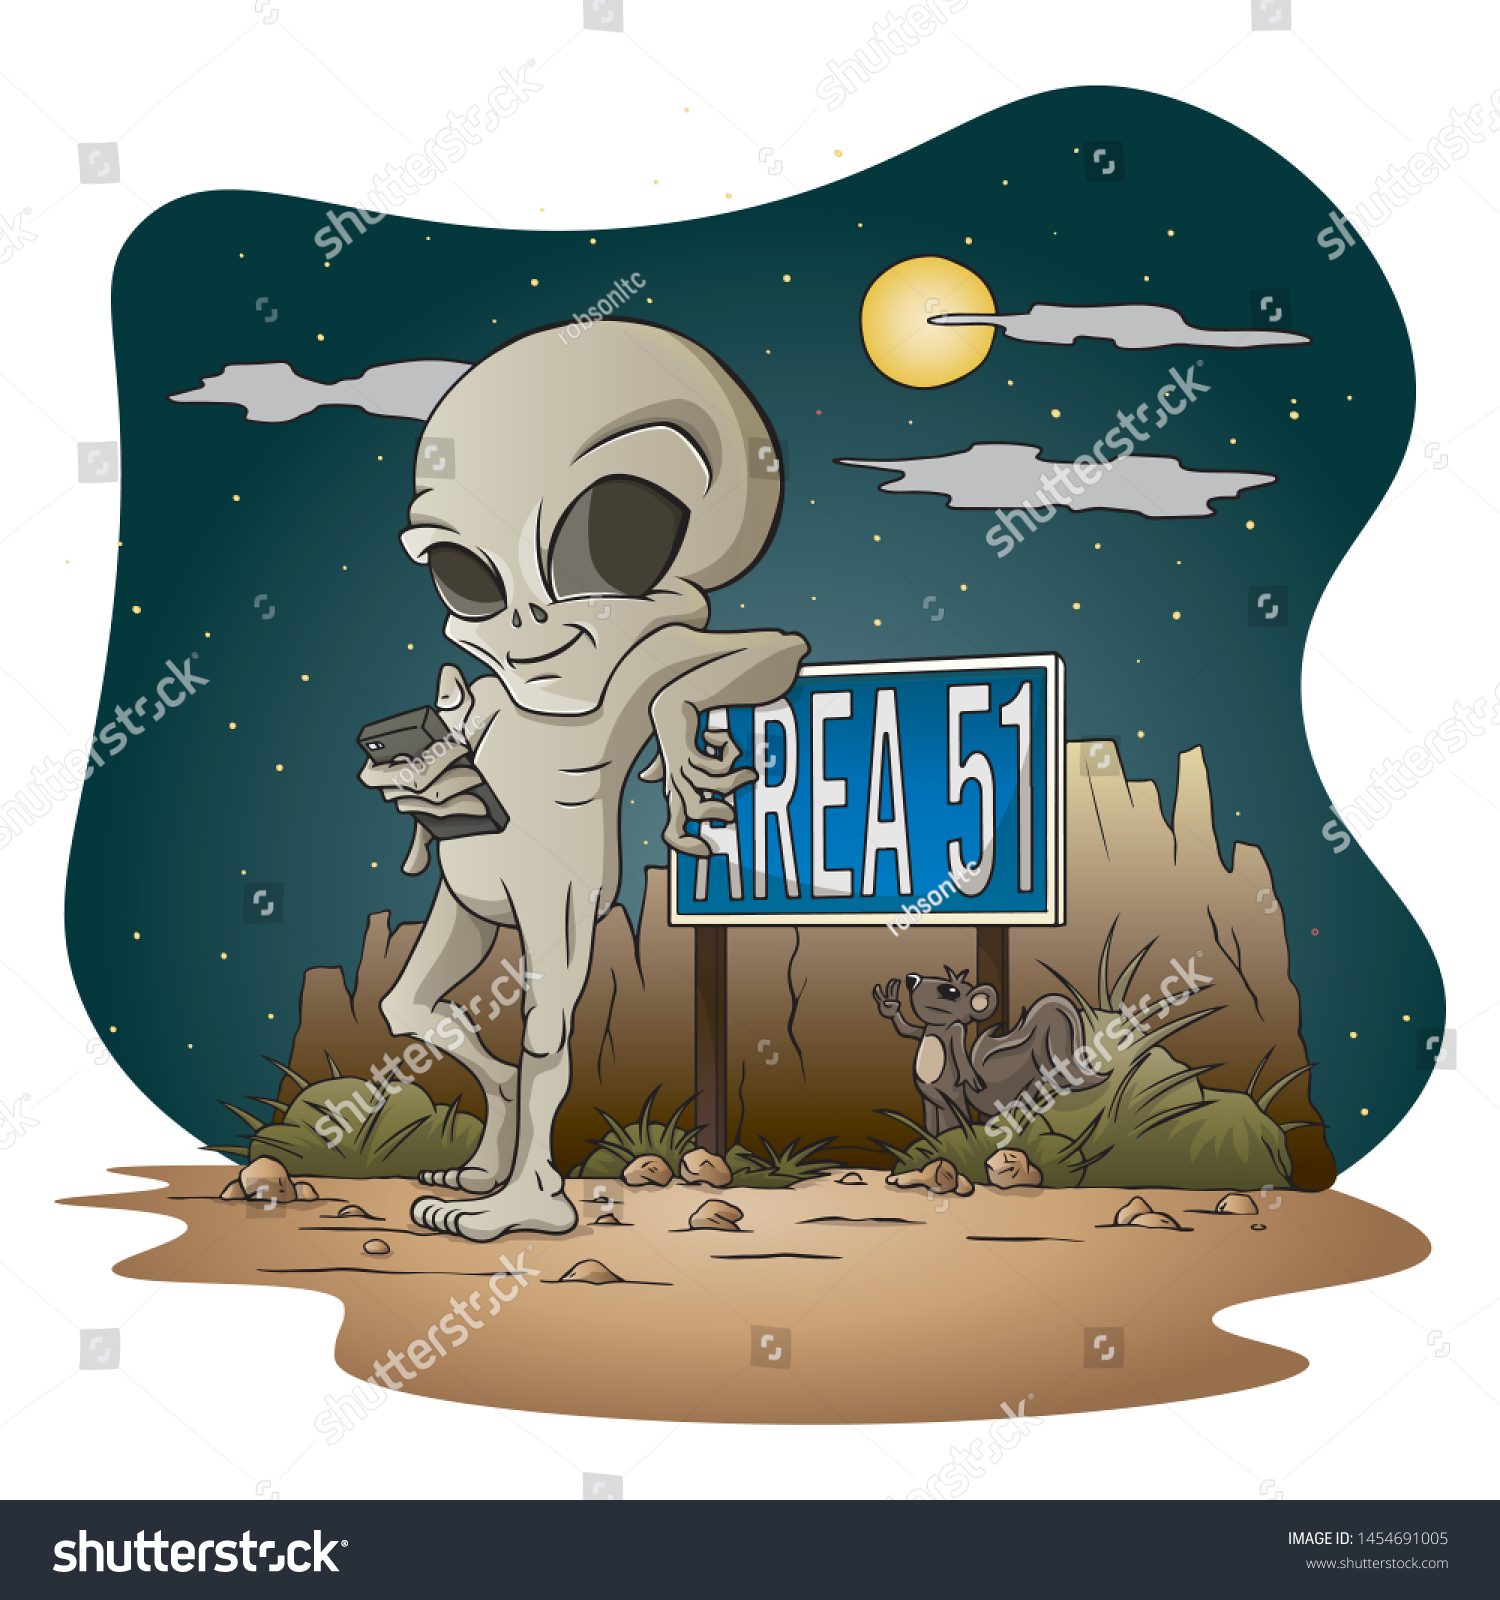 Grey Alien leaning on Area 51 sign #1454691005